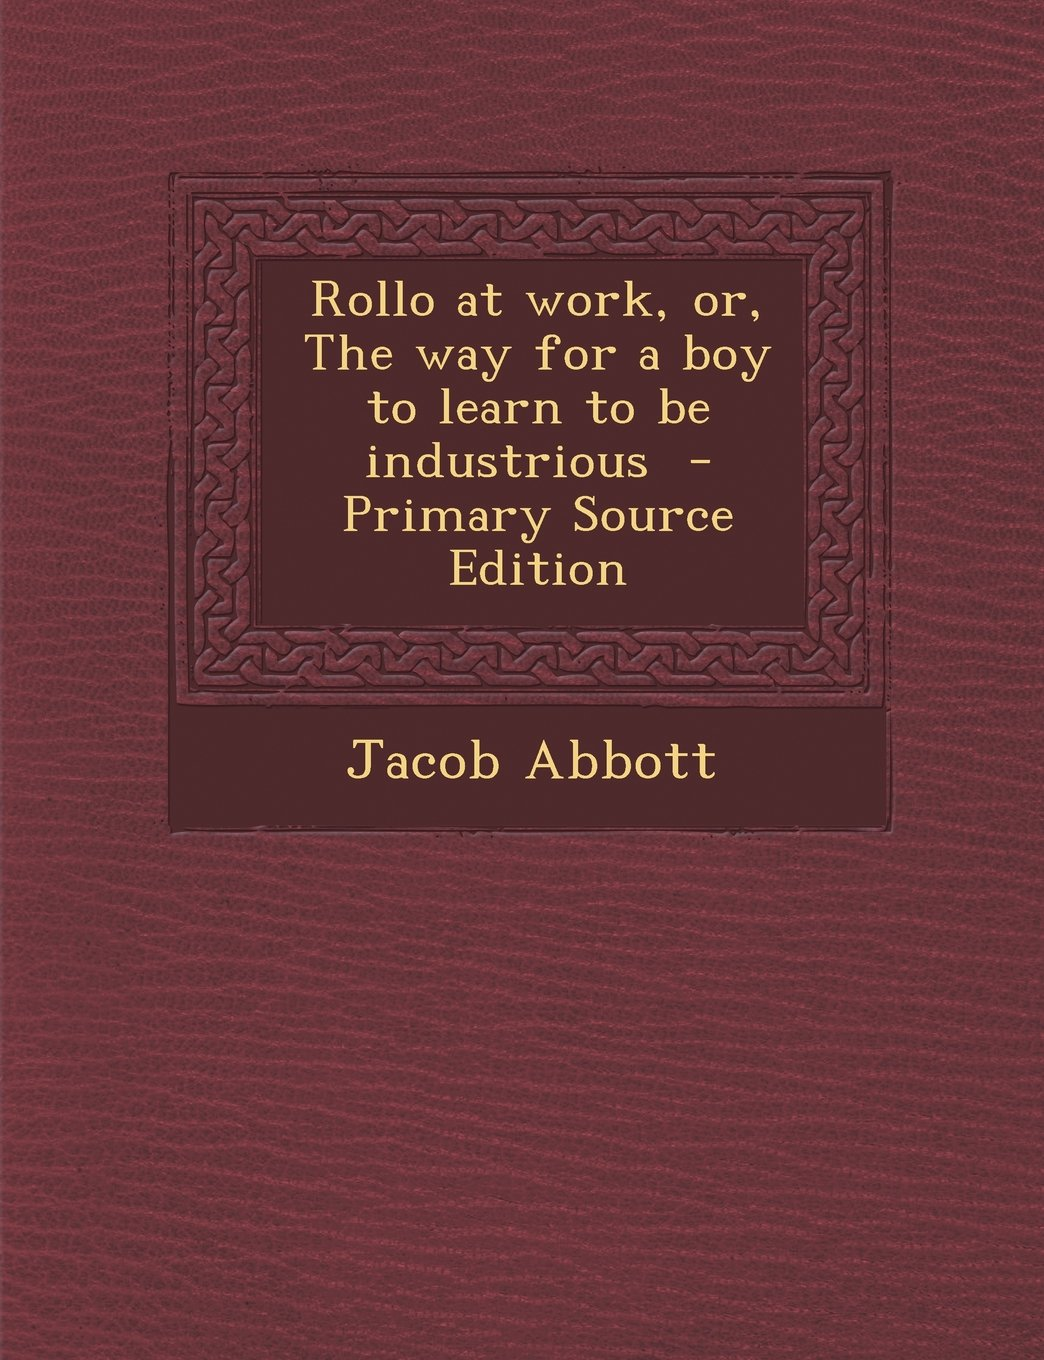 Read Online Rollo at work, or, The way for a boy to learn to be industrious  - Primary Source Edition PDF